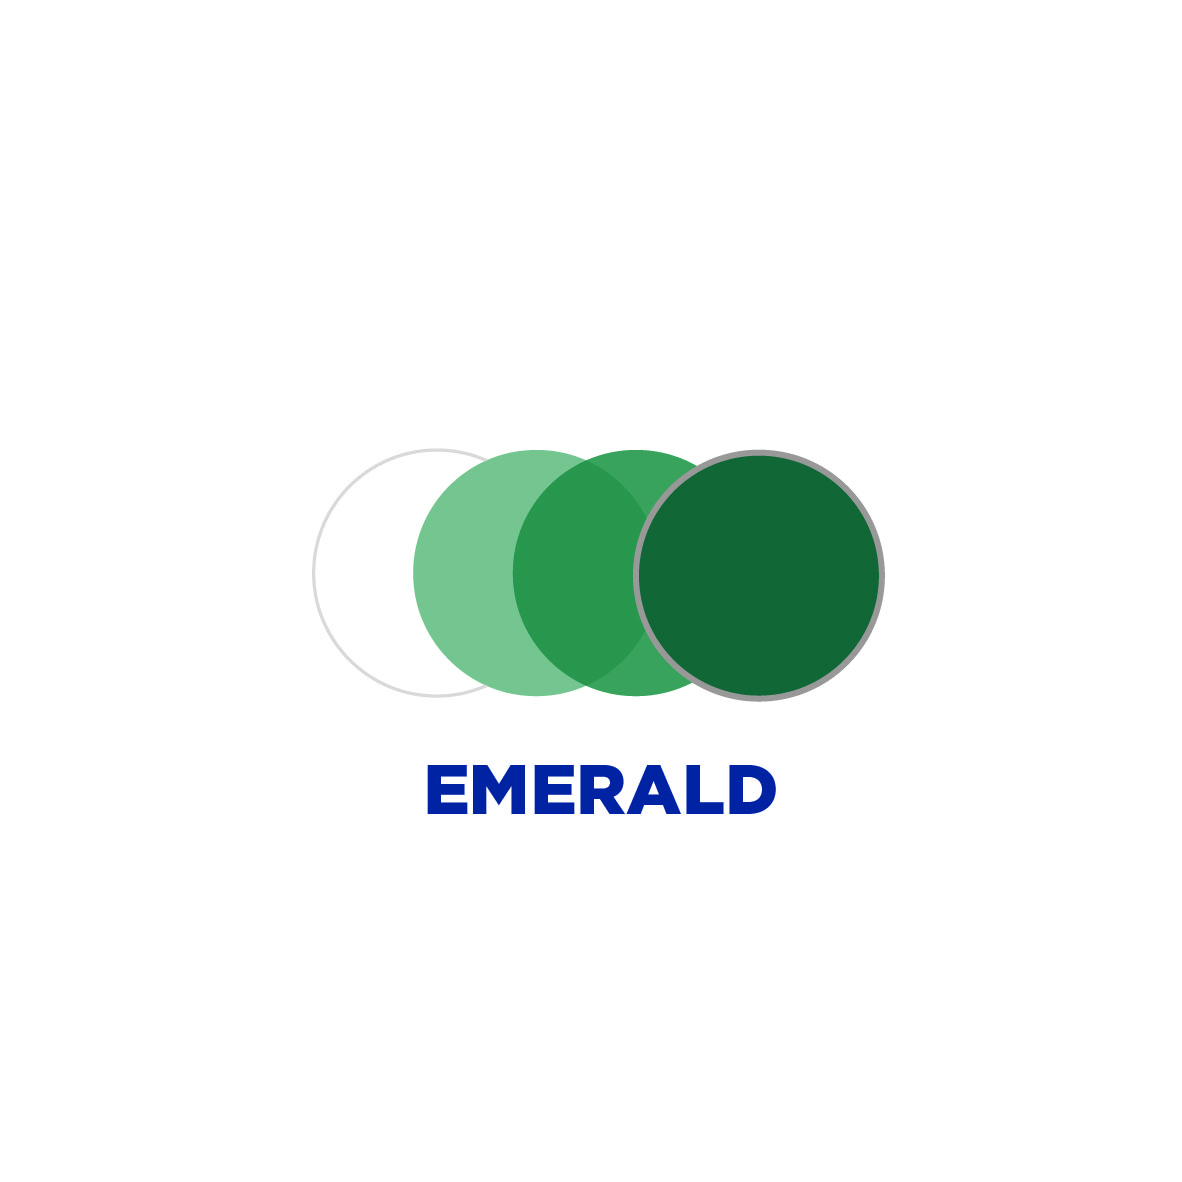 transitions_signature_style_colors_line_of_lenses_emerald_with_writing_jpg.jpg